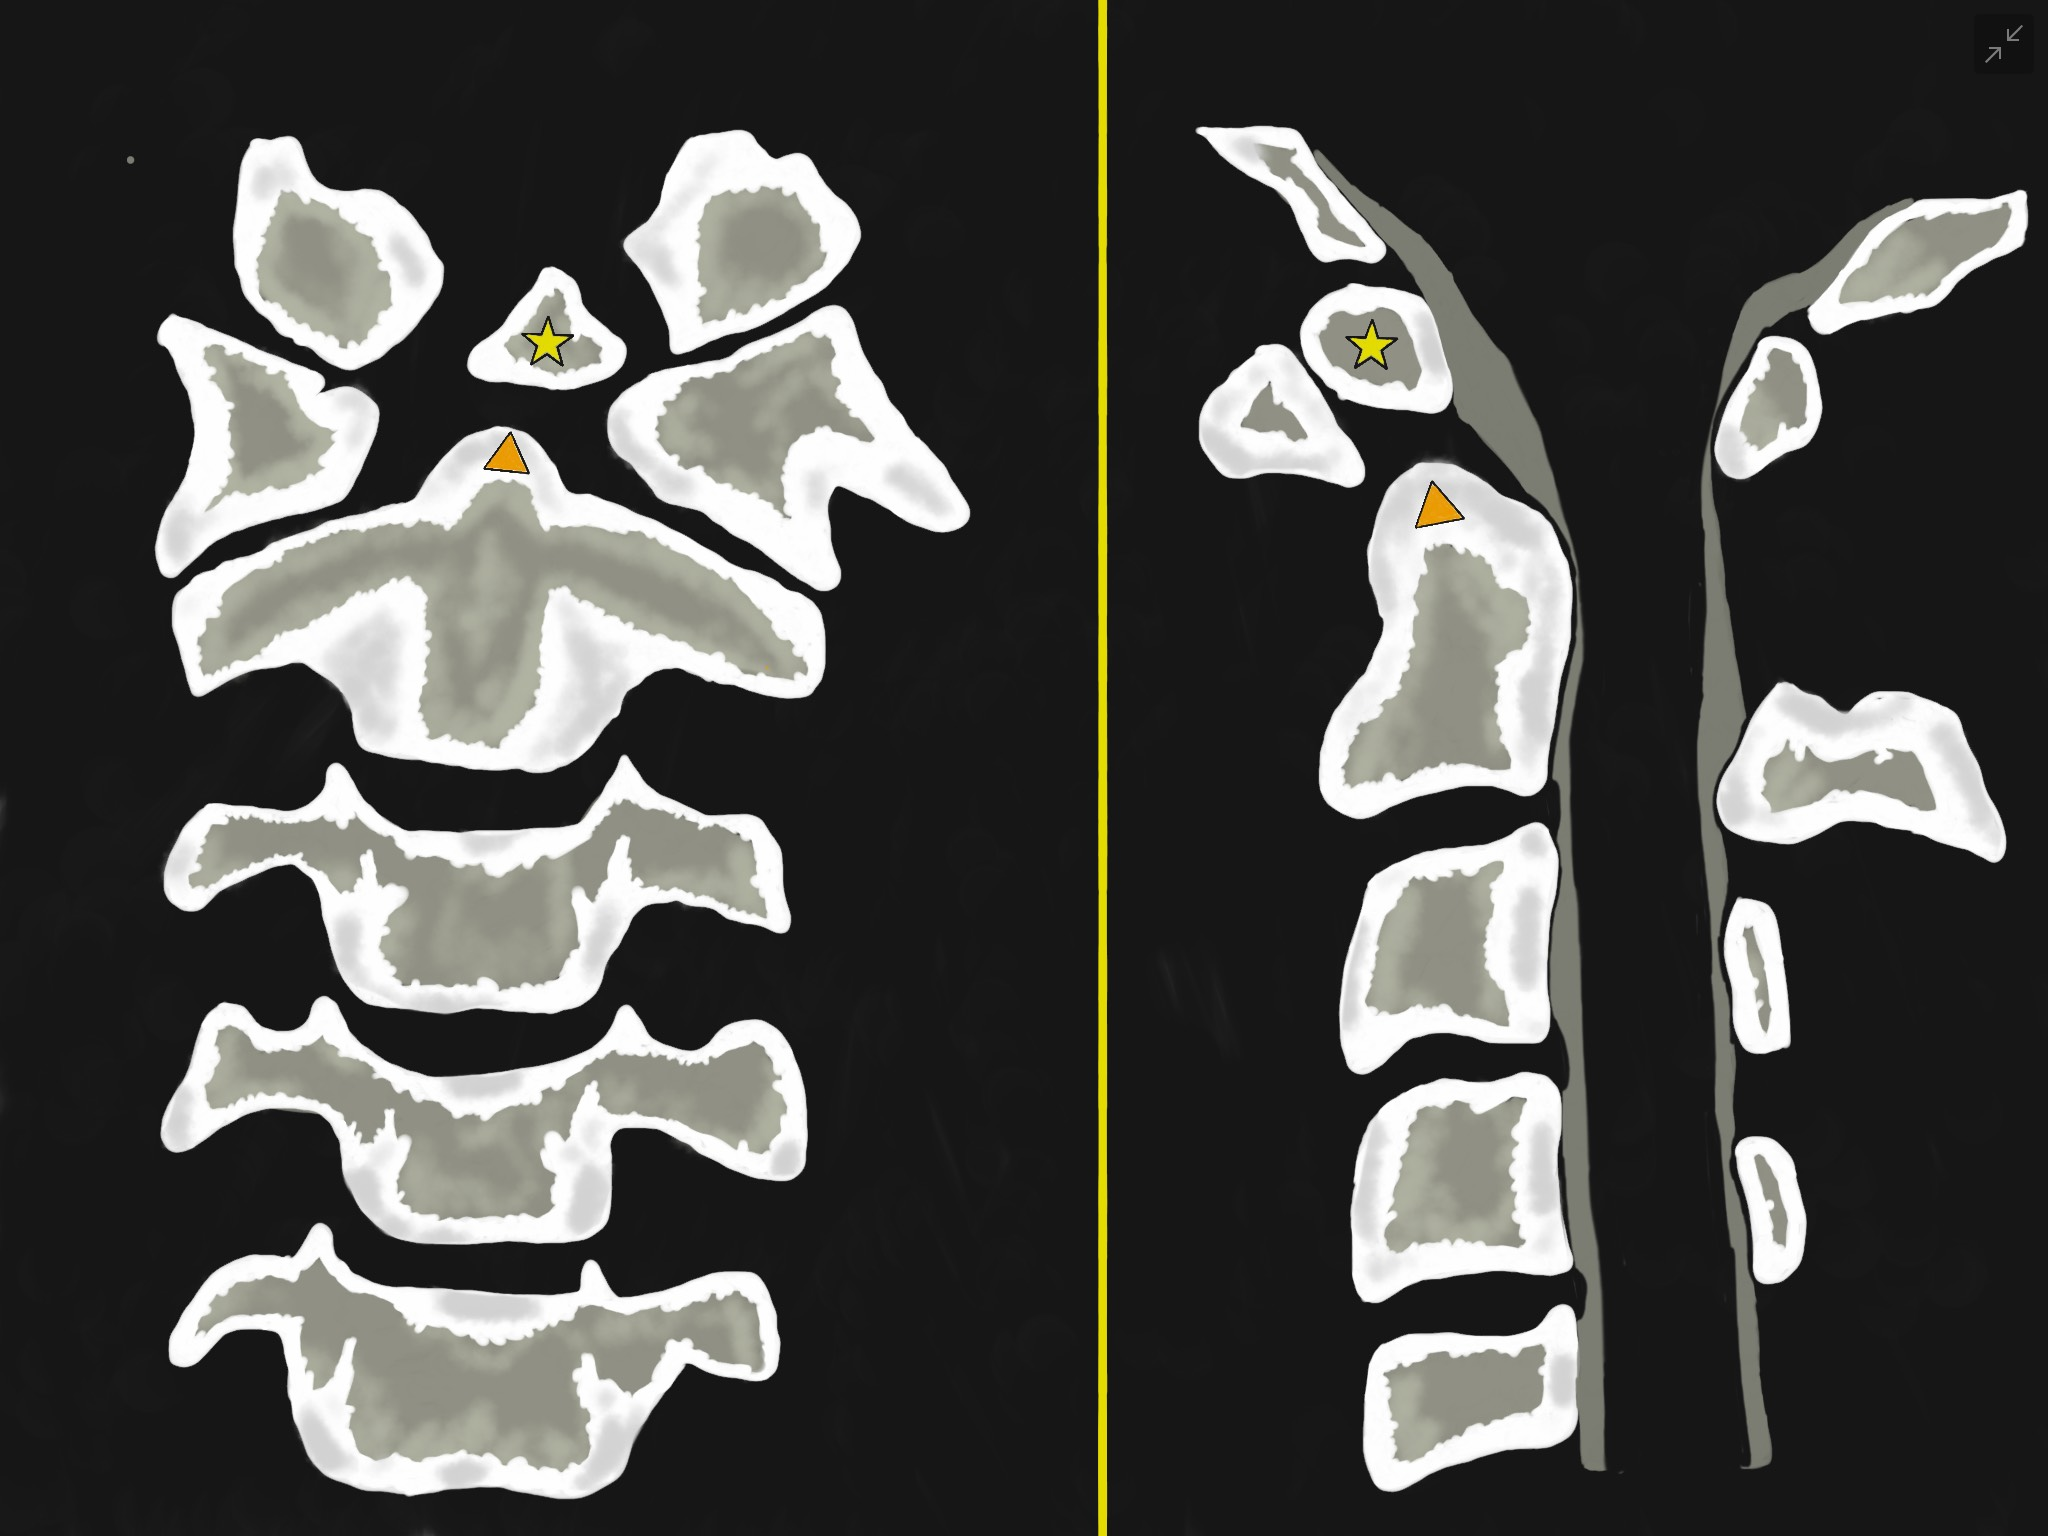 Figure 1 - Illustration that represents an upper cervical spine lateral view. It shows an oval or round-shaped ossicle with smooth circumferential cortical margins representing a hypoplastic odontoid process that has no continuity with the C2 vertebral body. The atlanto-dens interval (ADI) (orange star) is the distance between the odontoid process and the posterior border of the anterior arch of the atlas. The space-available-cord (SAC) or posterior atlanto-dens-interval (PADI) (orange triangle) is the distance between the posterior surface of dens and the anterior surface of the posterior arch of the atlas.